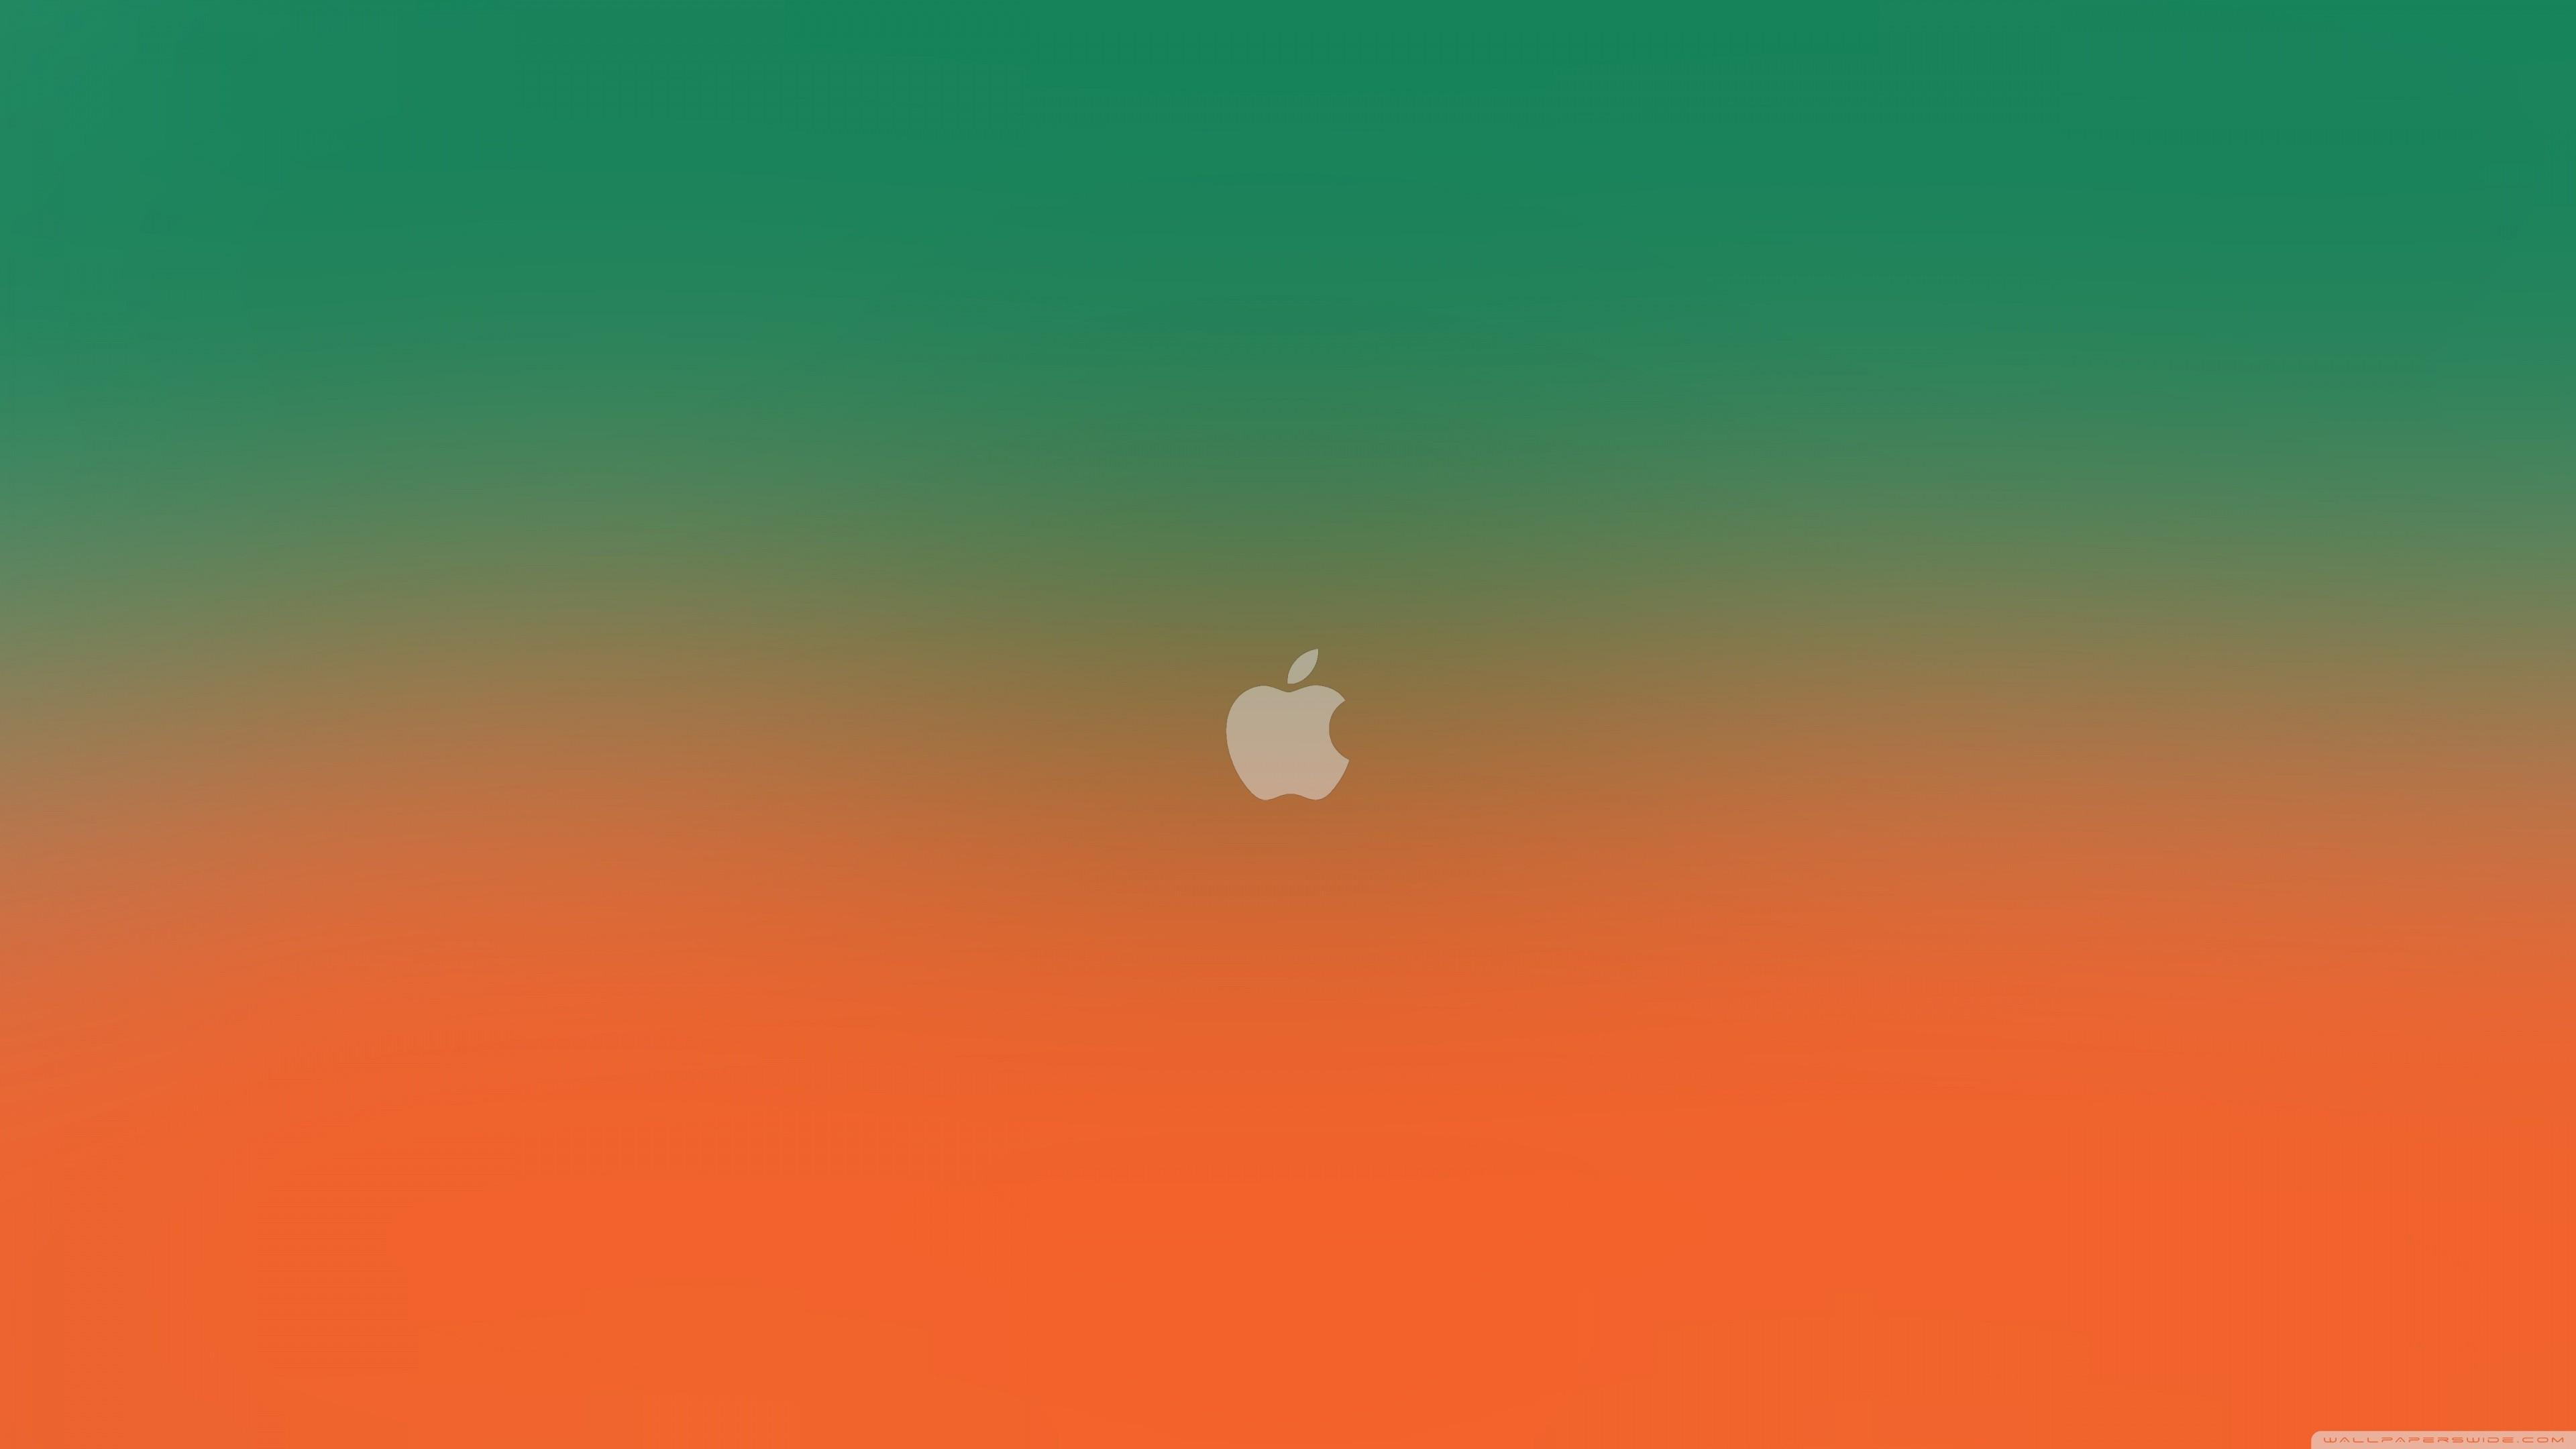 cool uhd with orange and green wallpaper